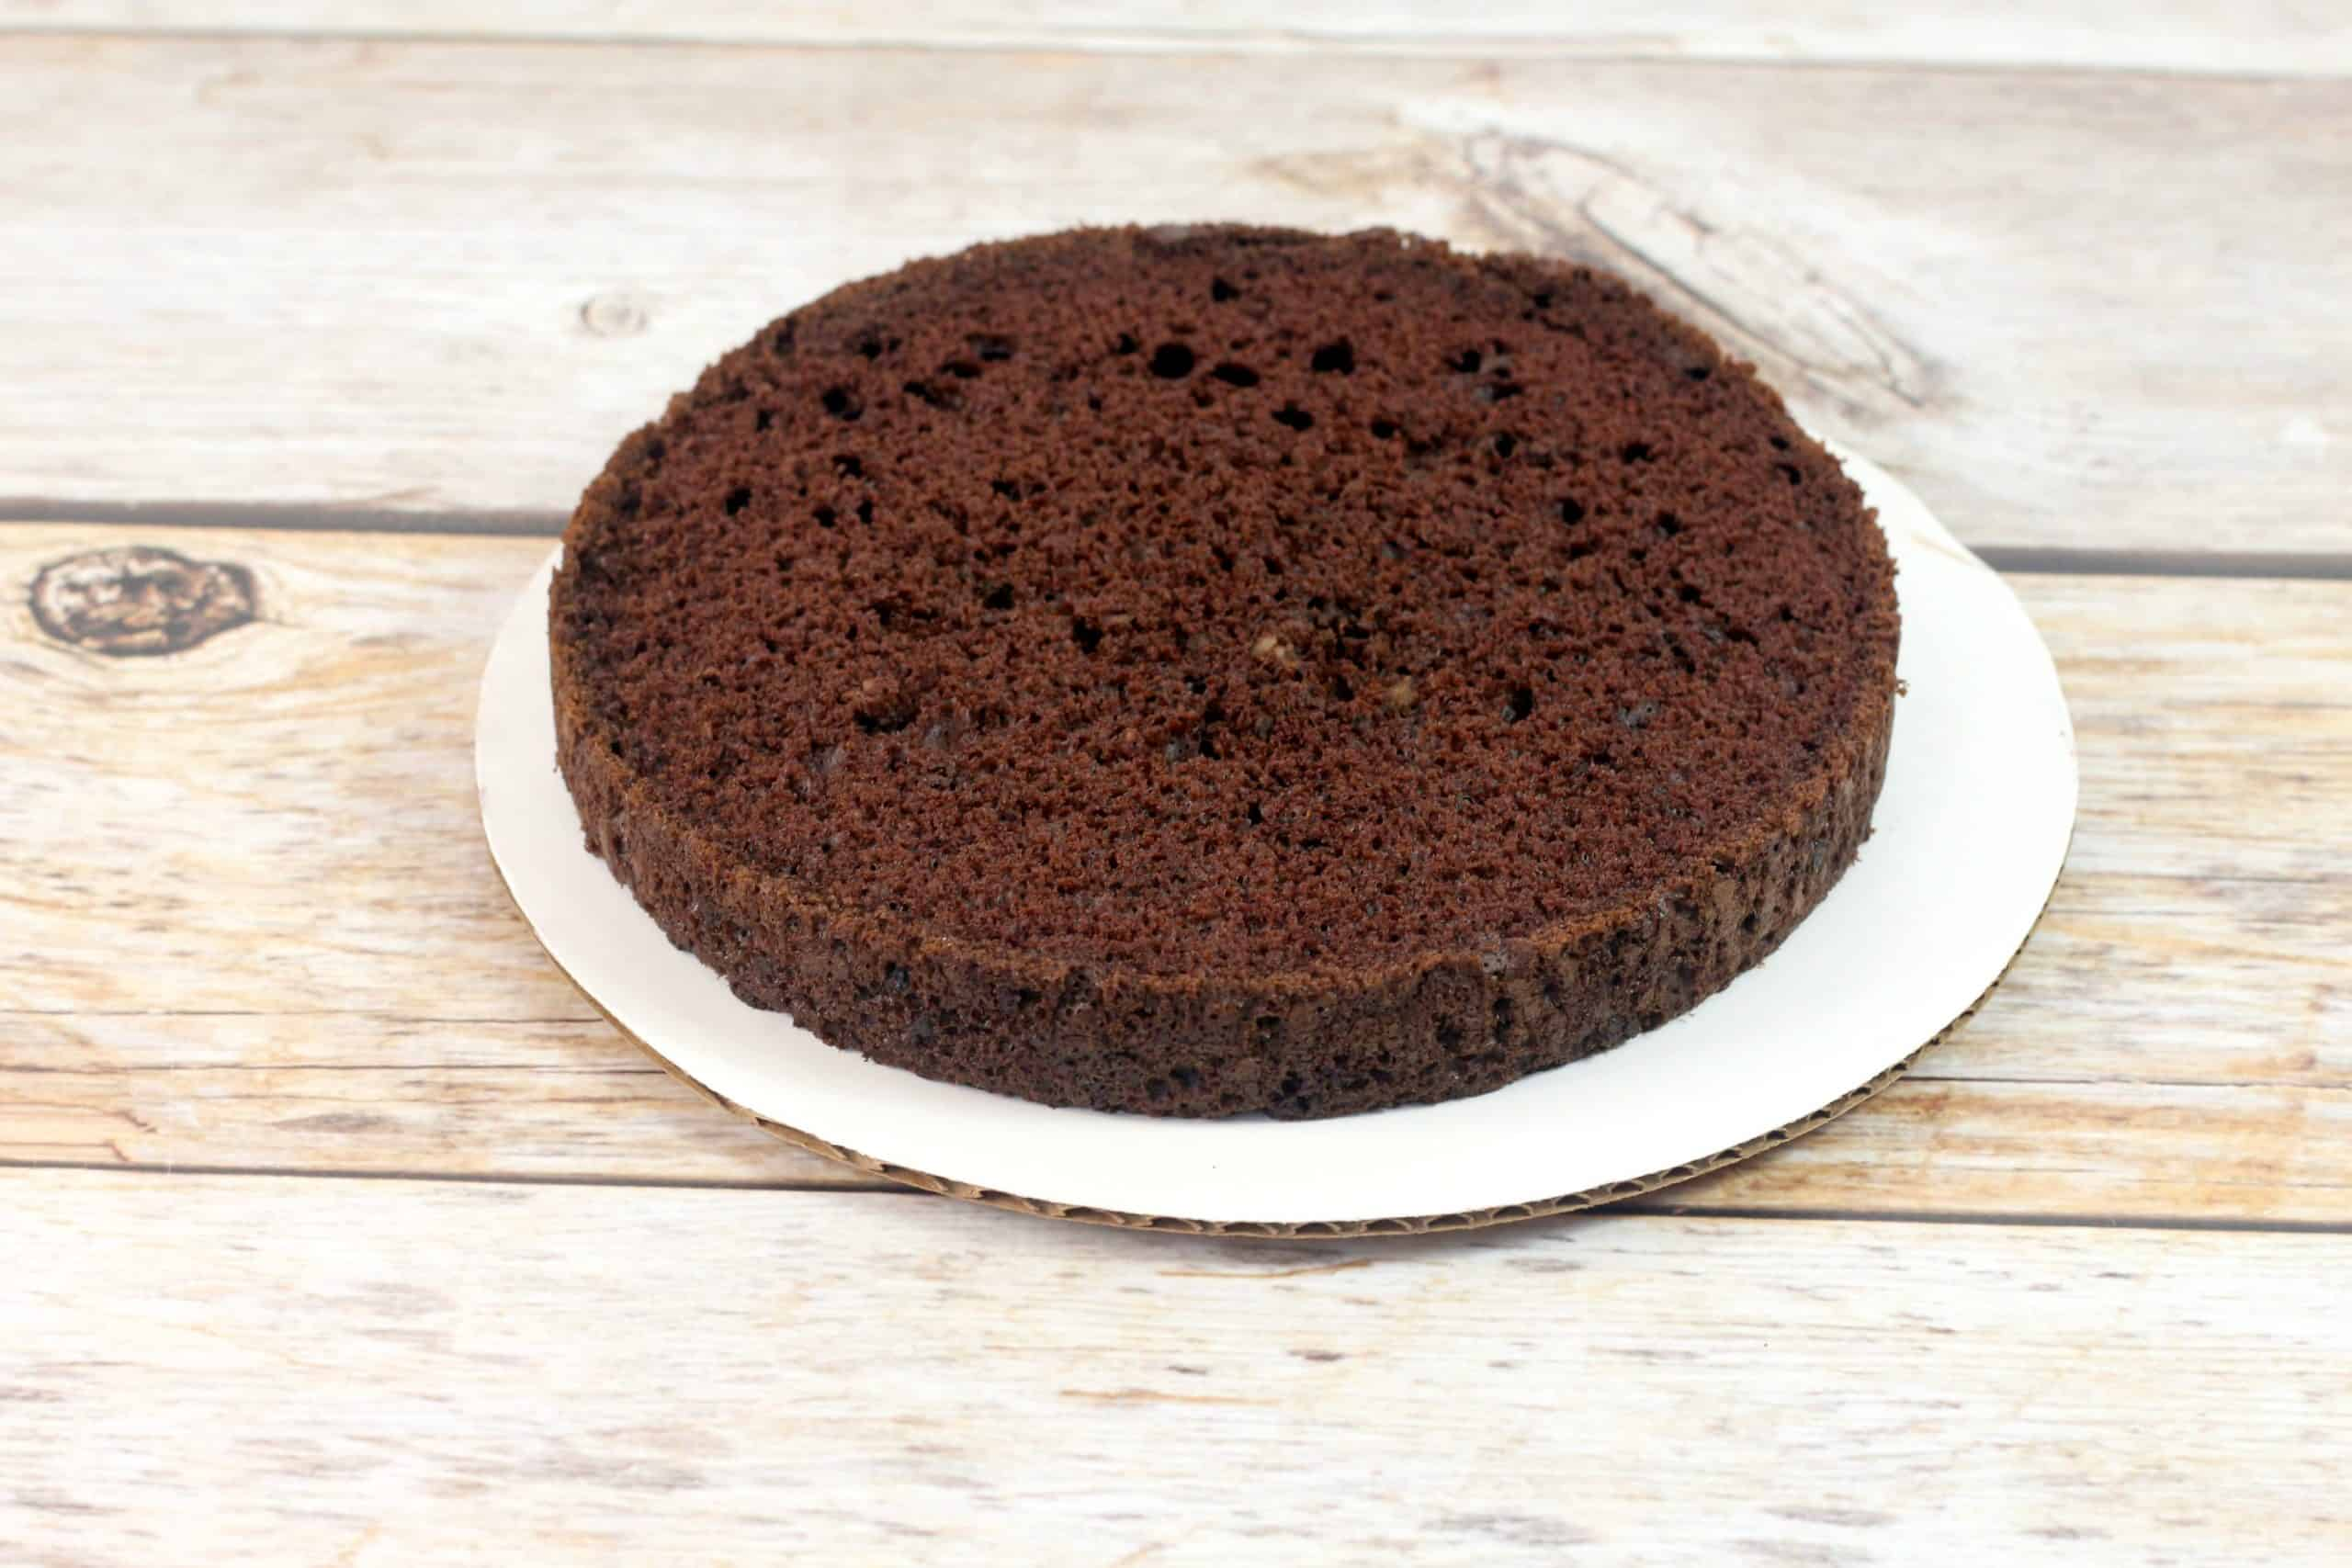 trimmed chocolate cake